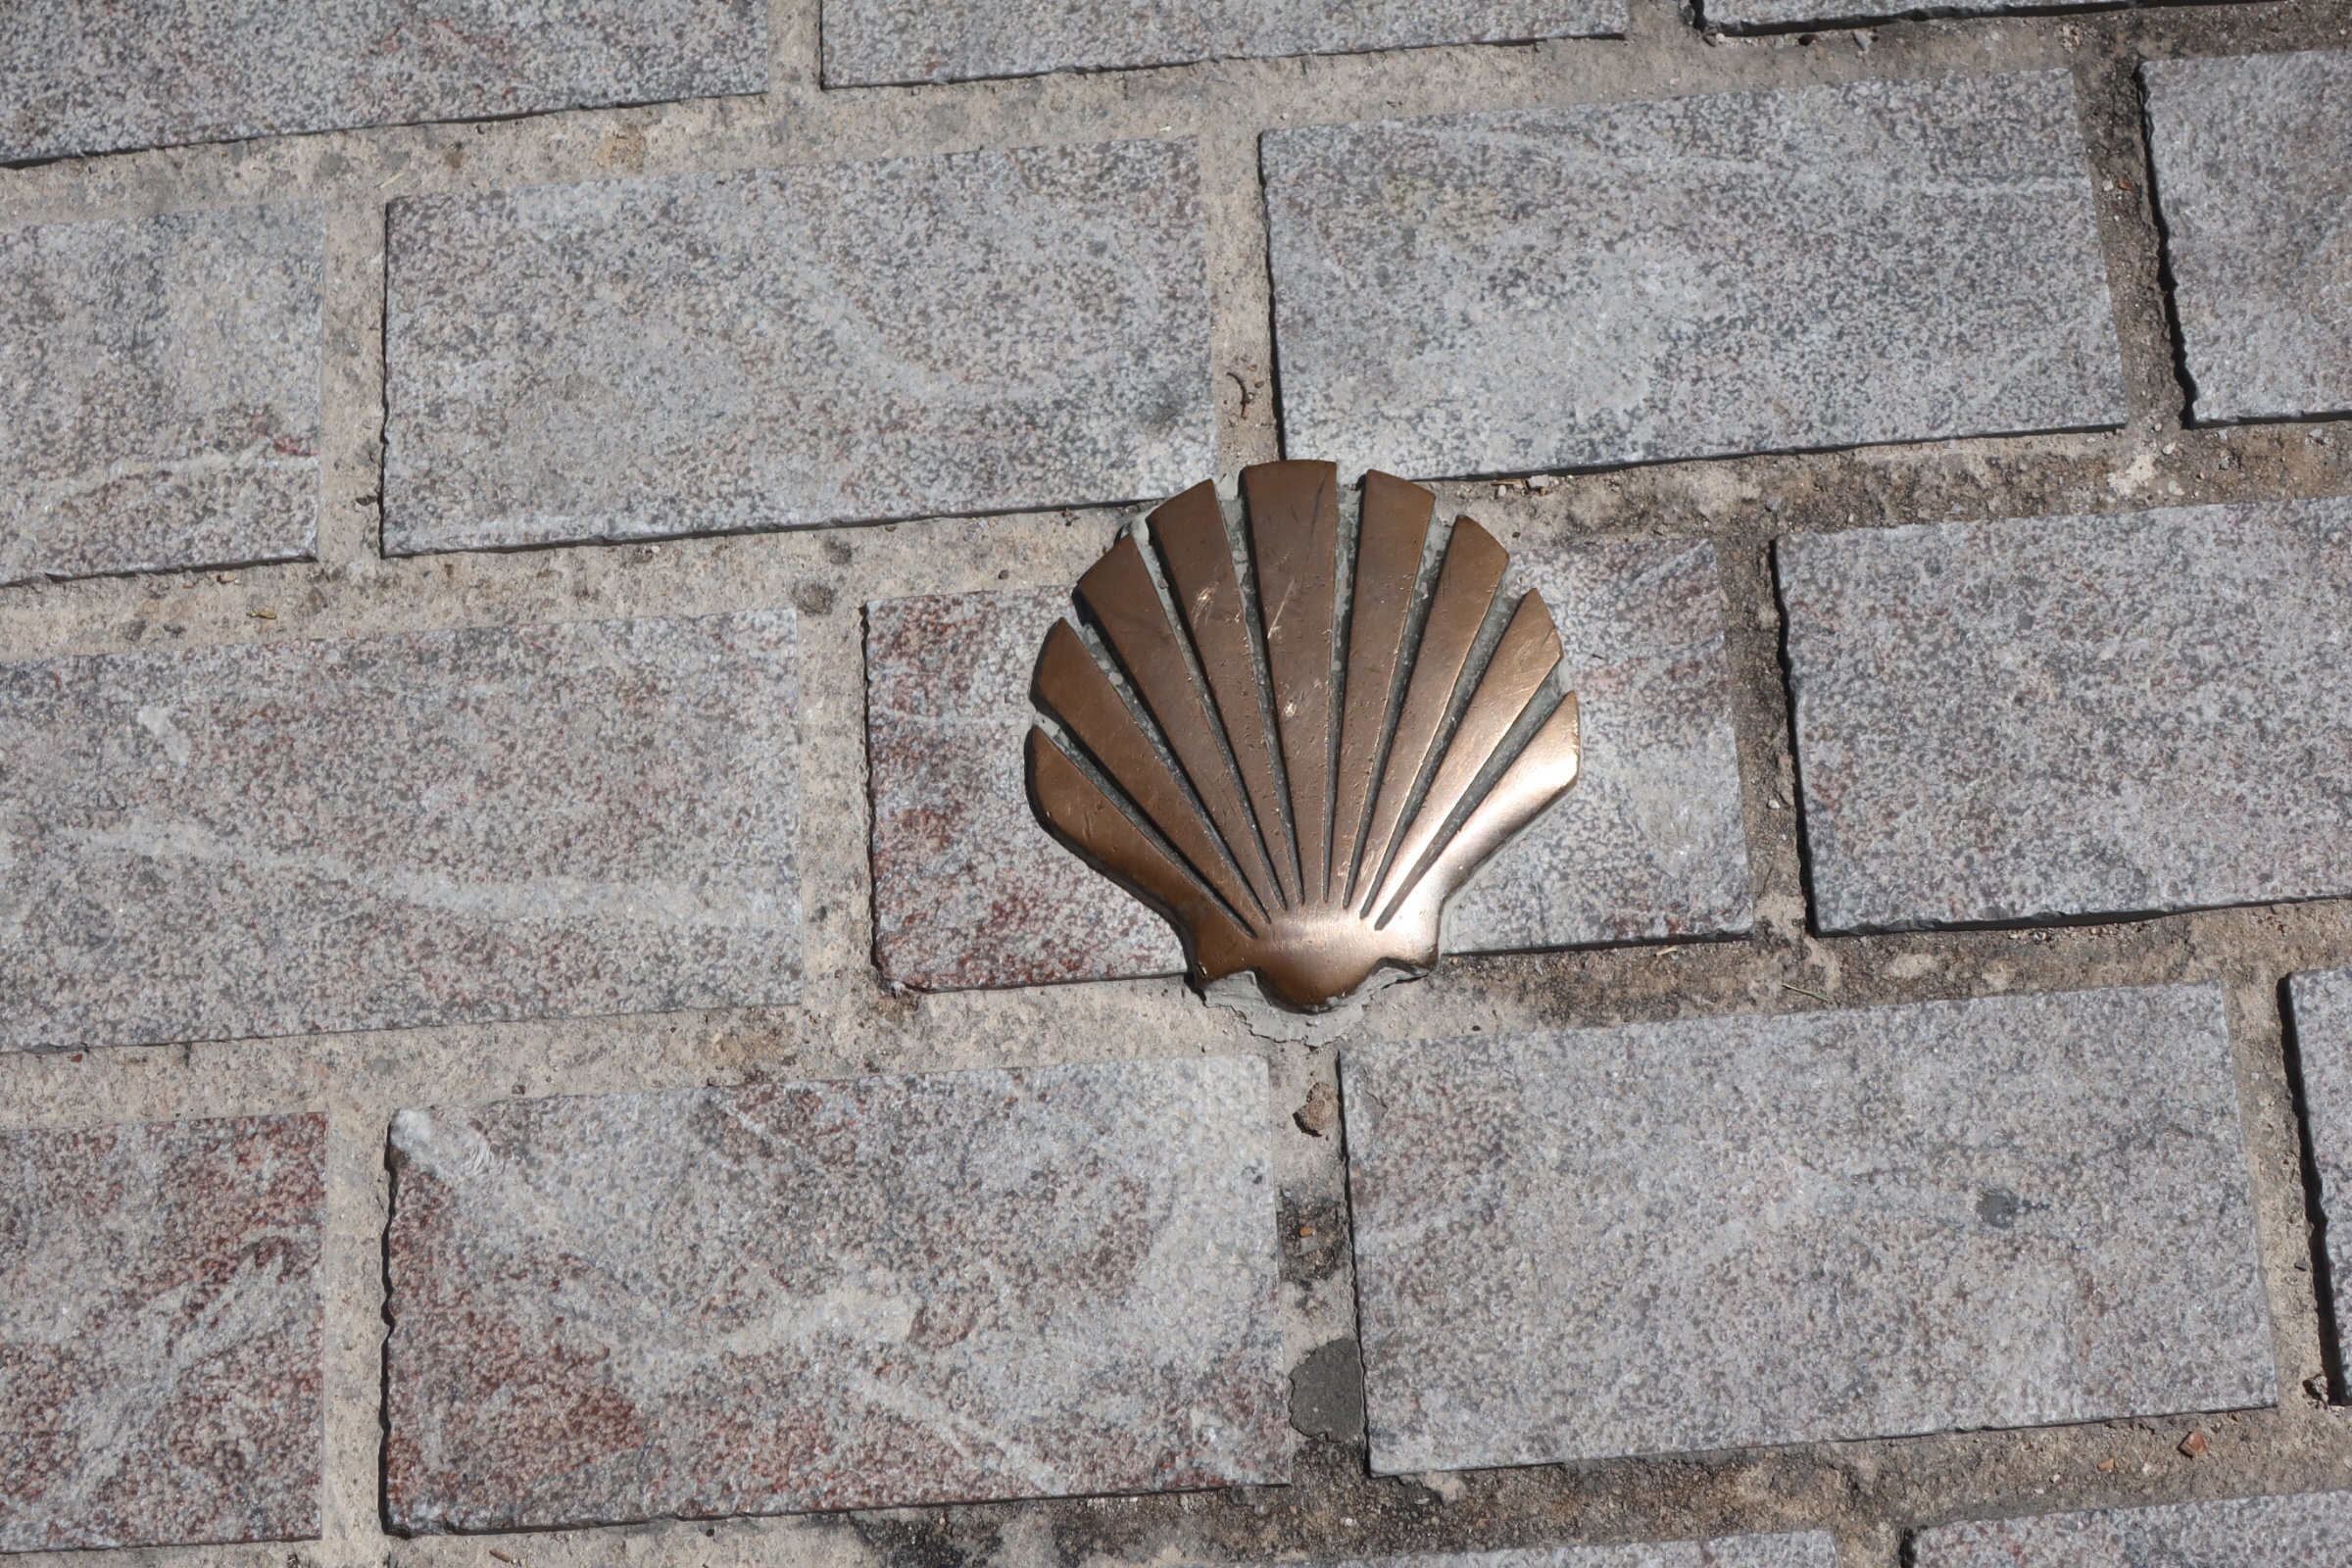 The sign of the scallop shell is everywhere